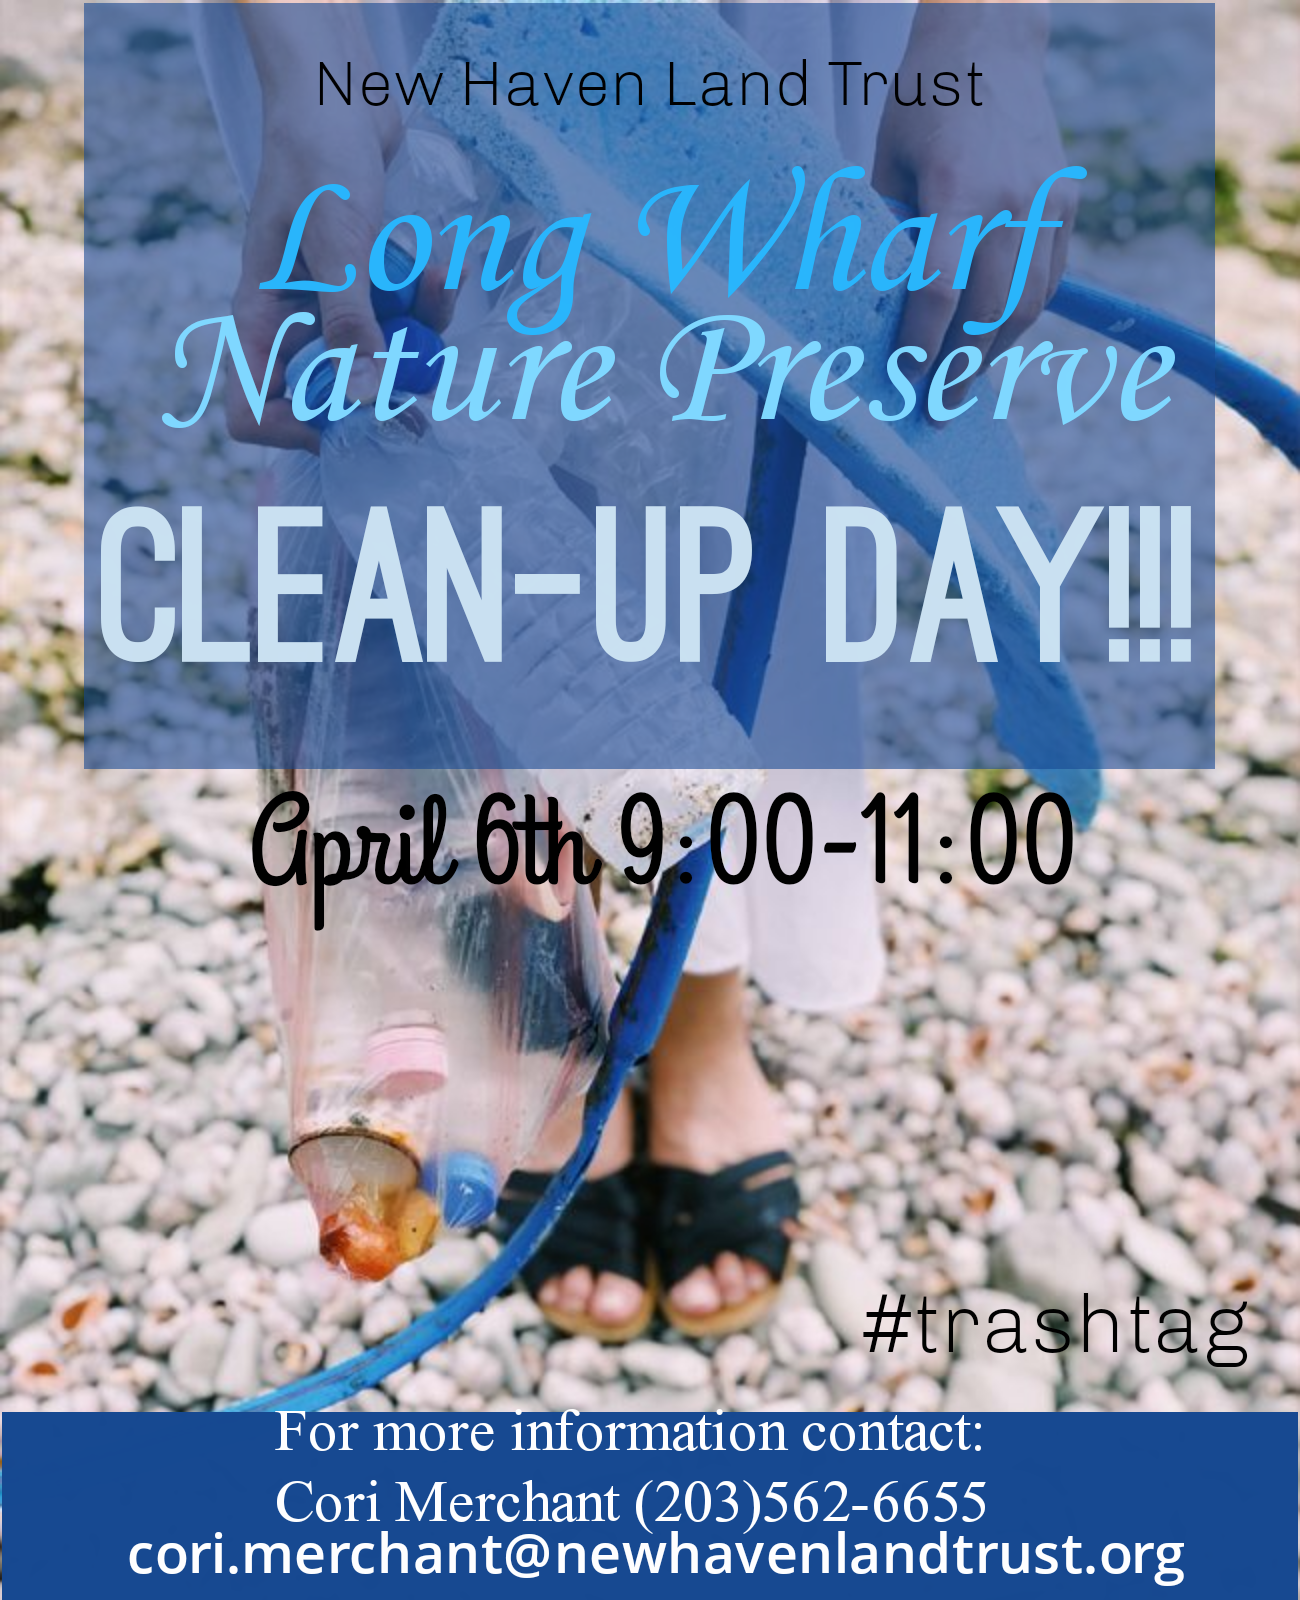 Long Wharf Nature Preserve Clean-Up Day